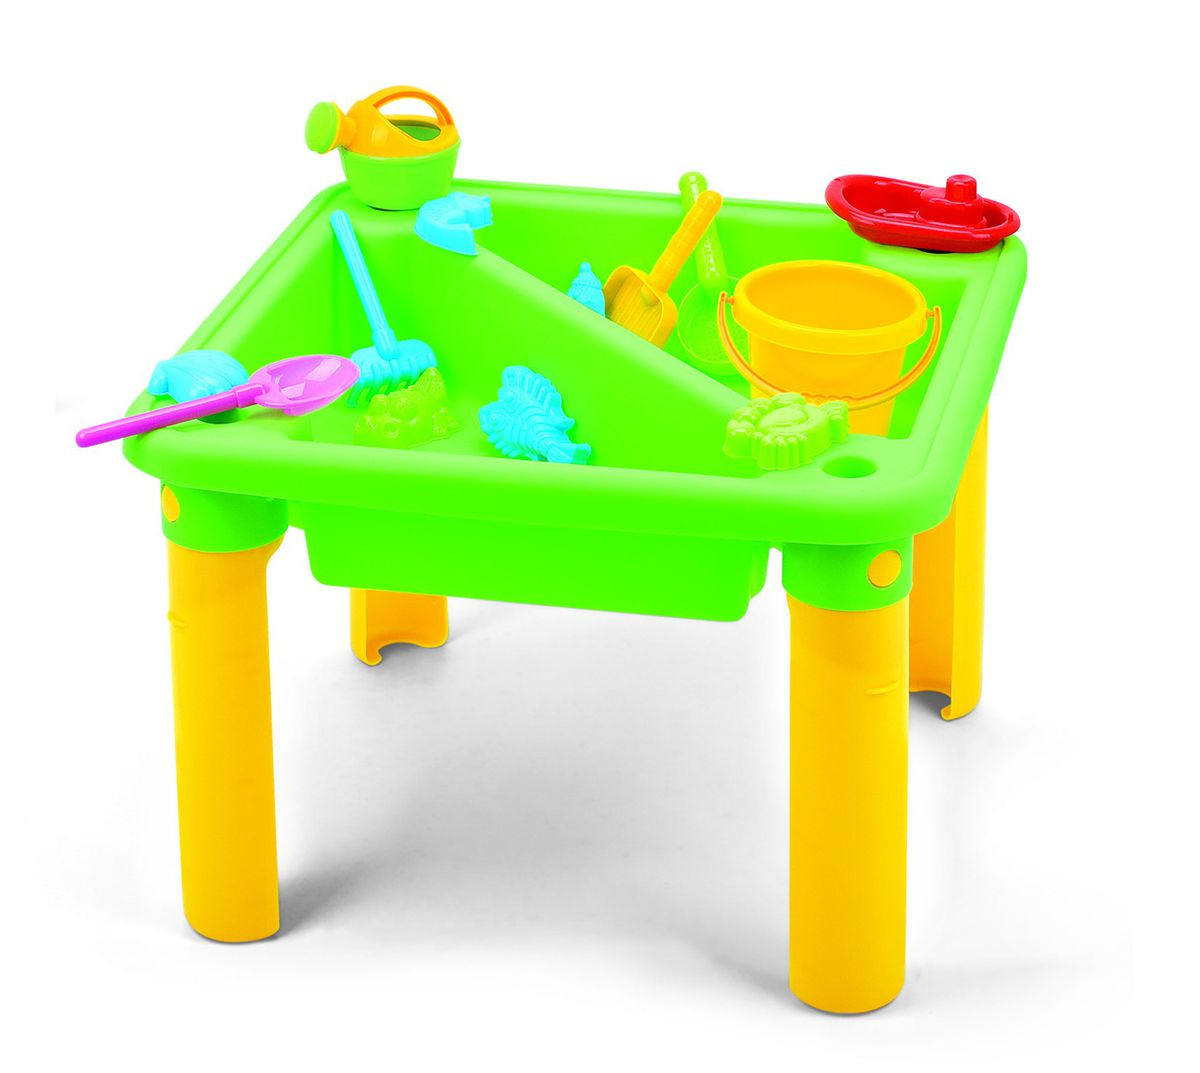 Fun Beginnings Sand And Water Table With Cover   19 Piece. Loading Zoom